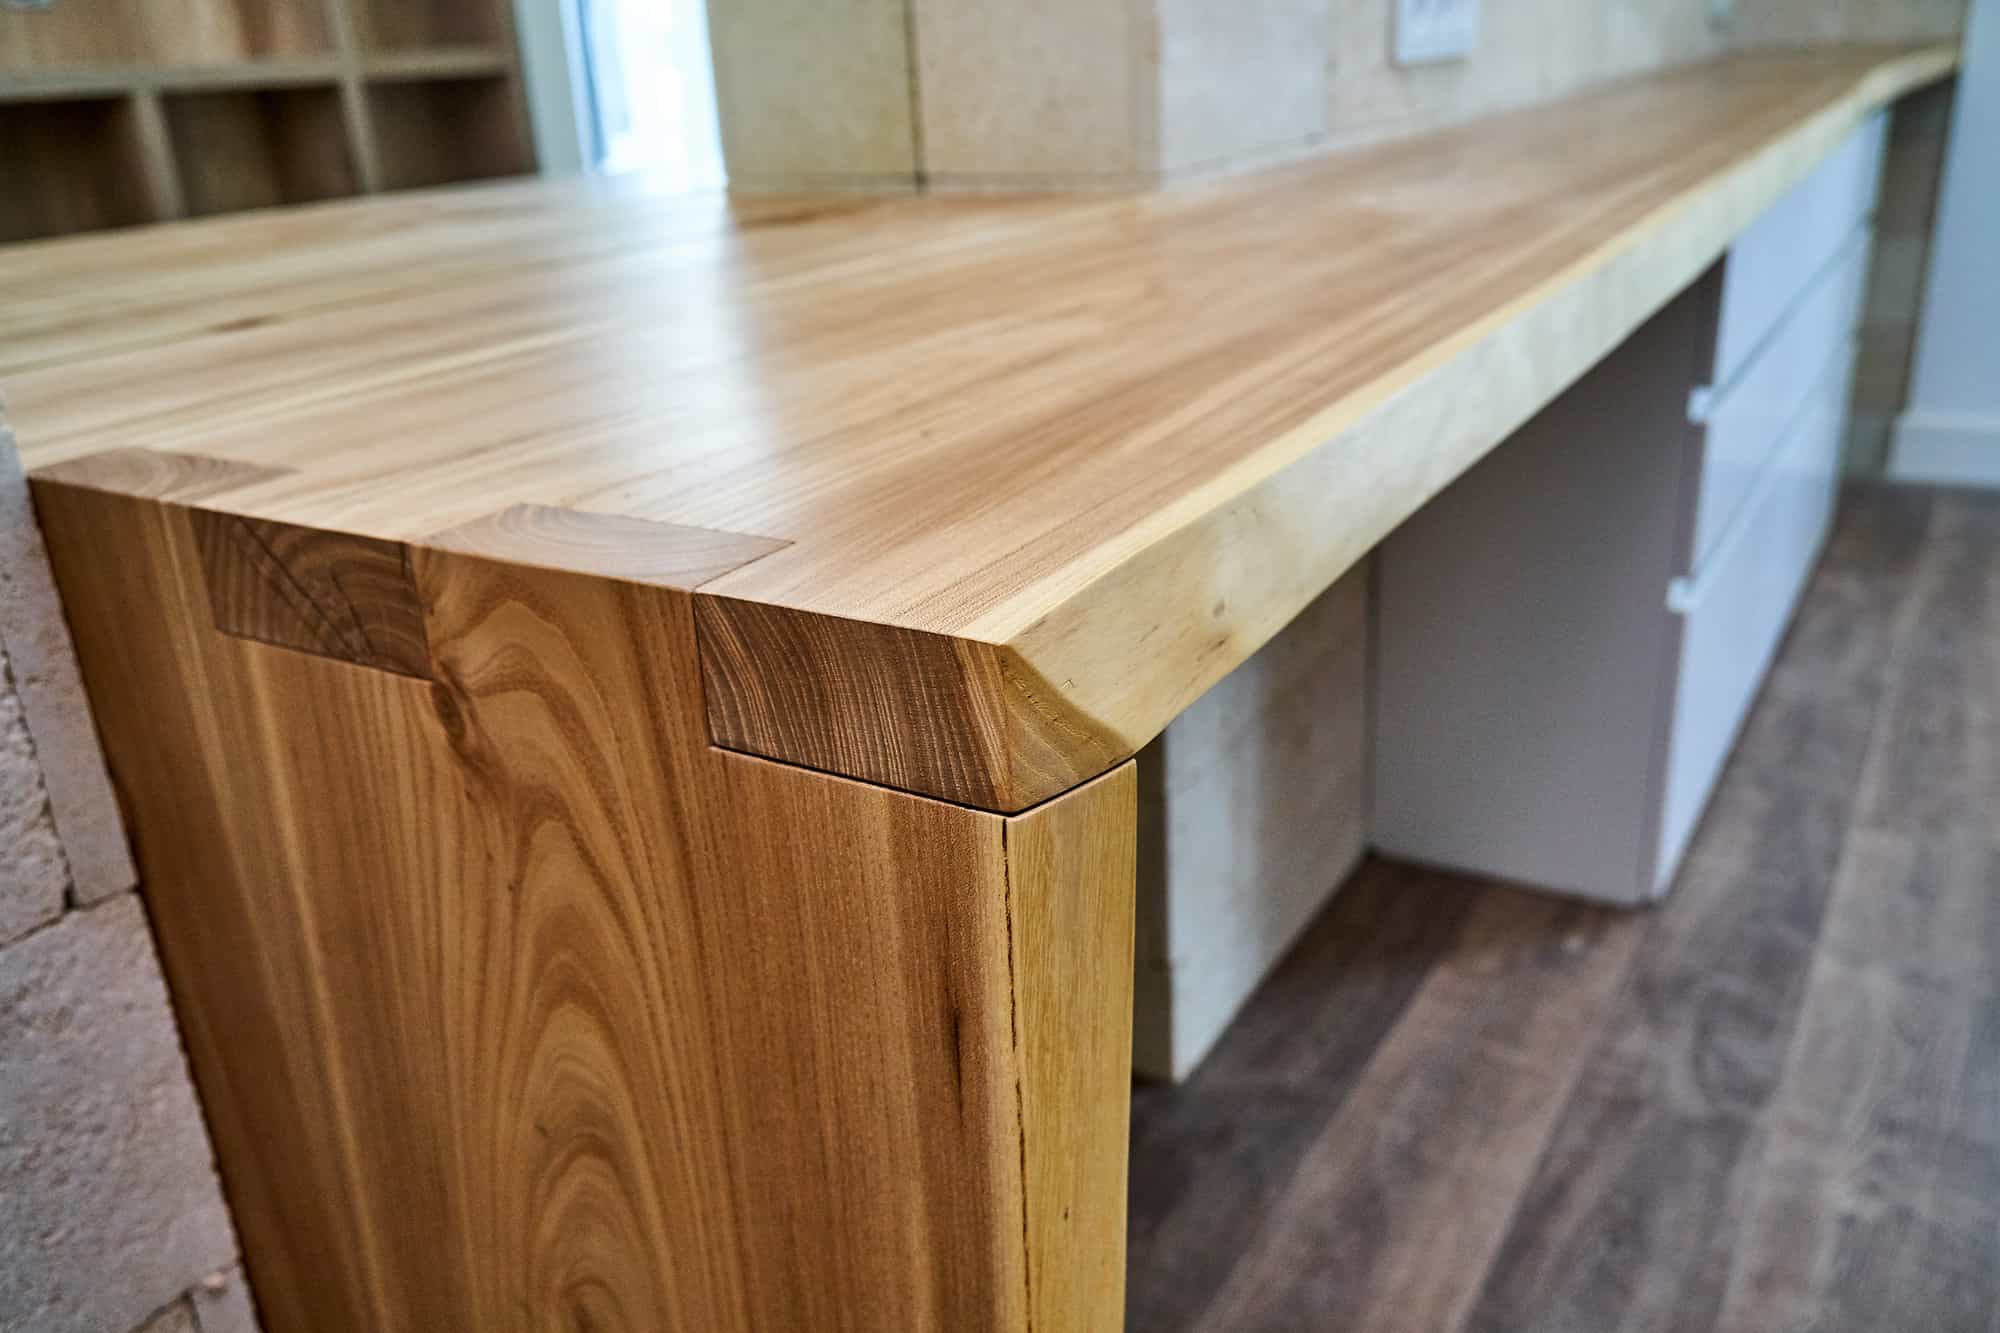 A varnished & finished live edge counter top in a kitchen setting